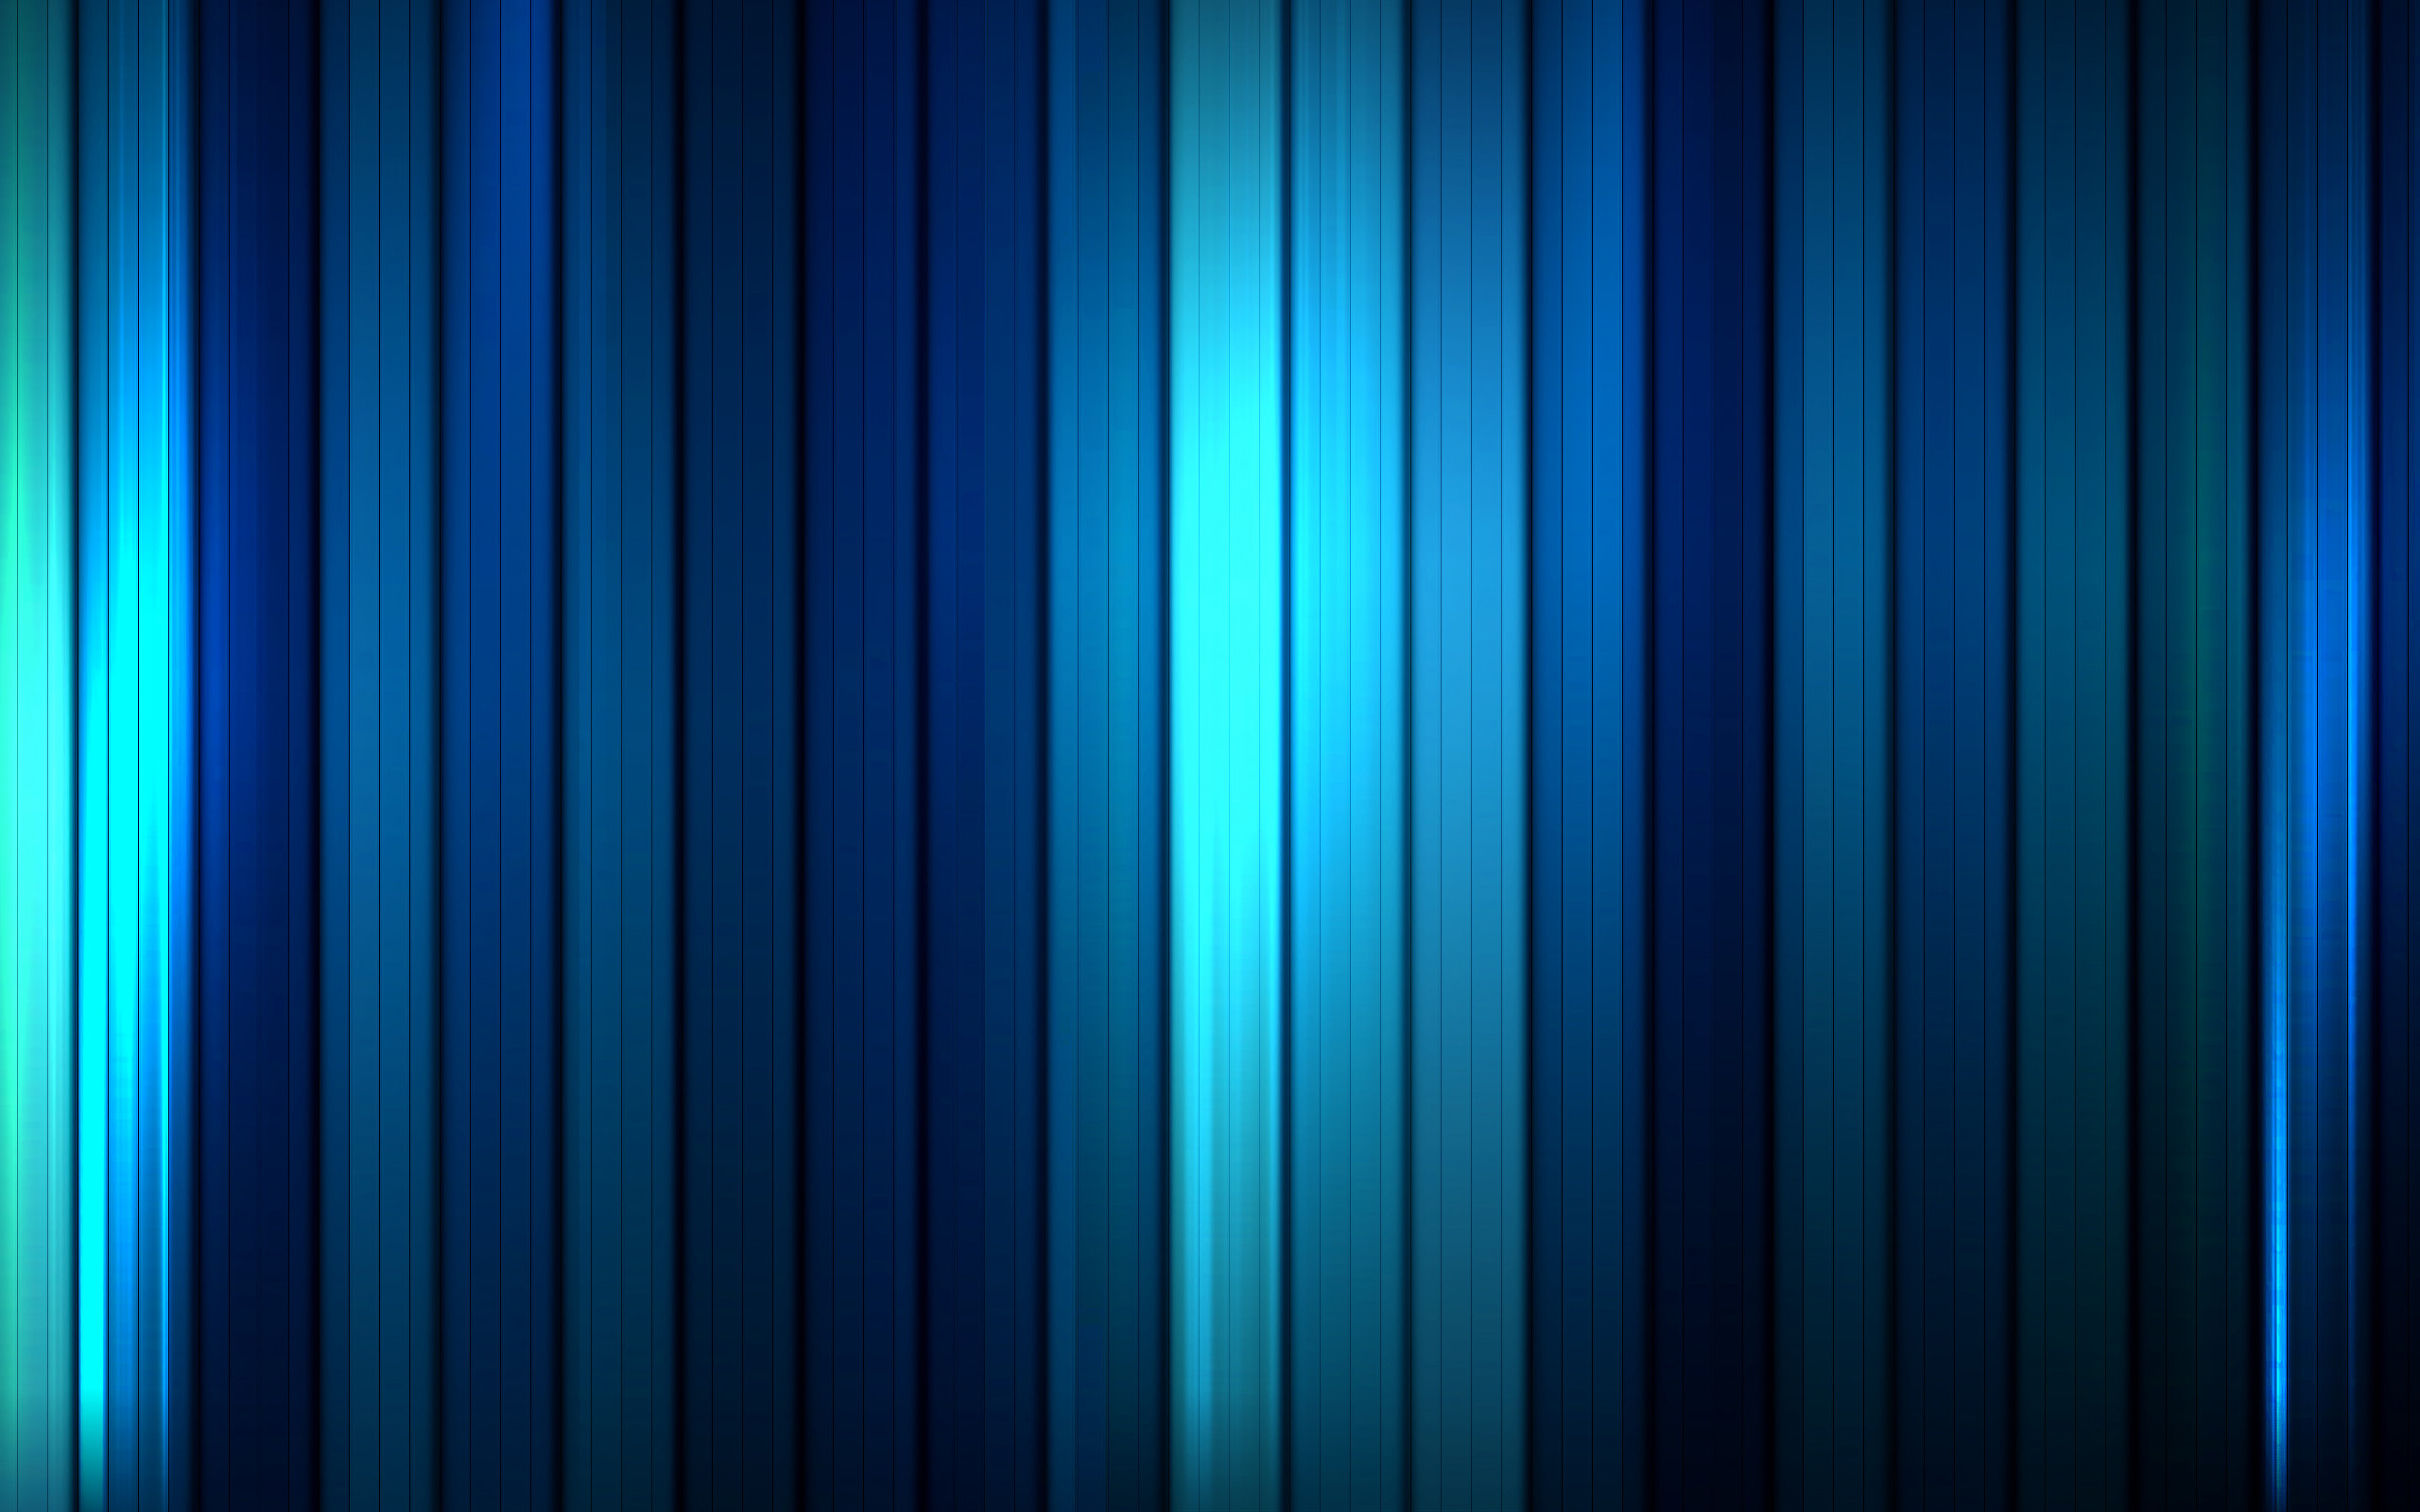 vertical lines texture, blue vertical lines texture, backgrounds, background for website